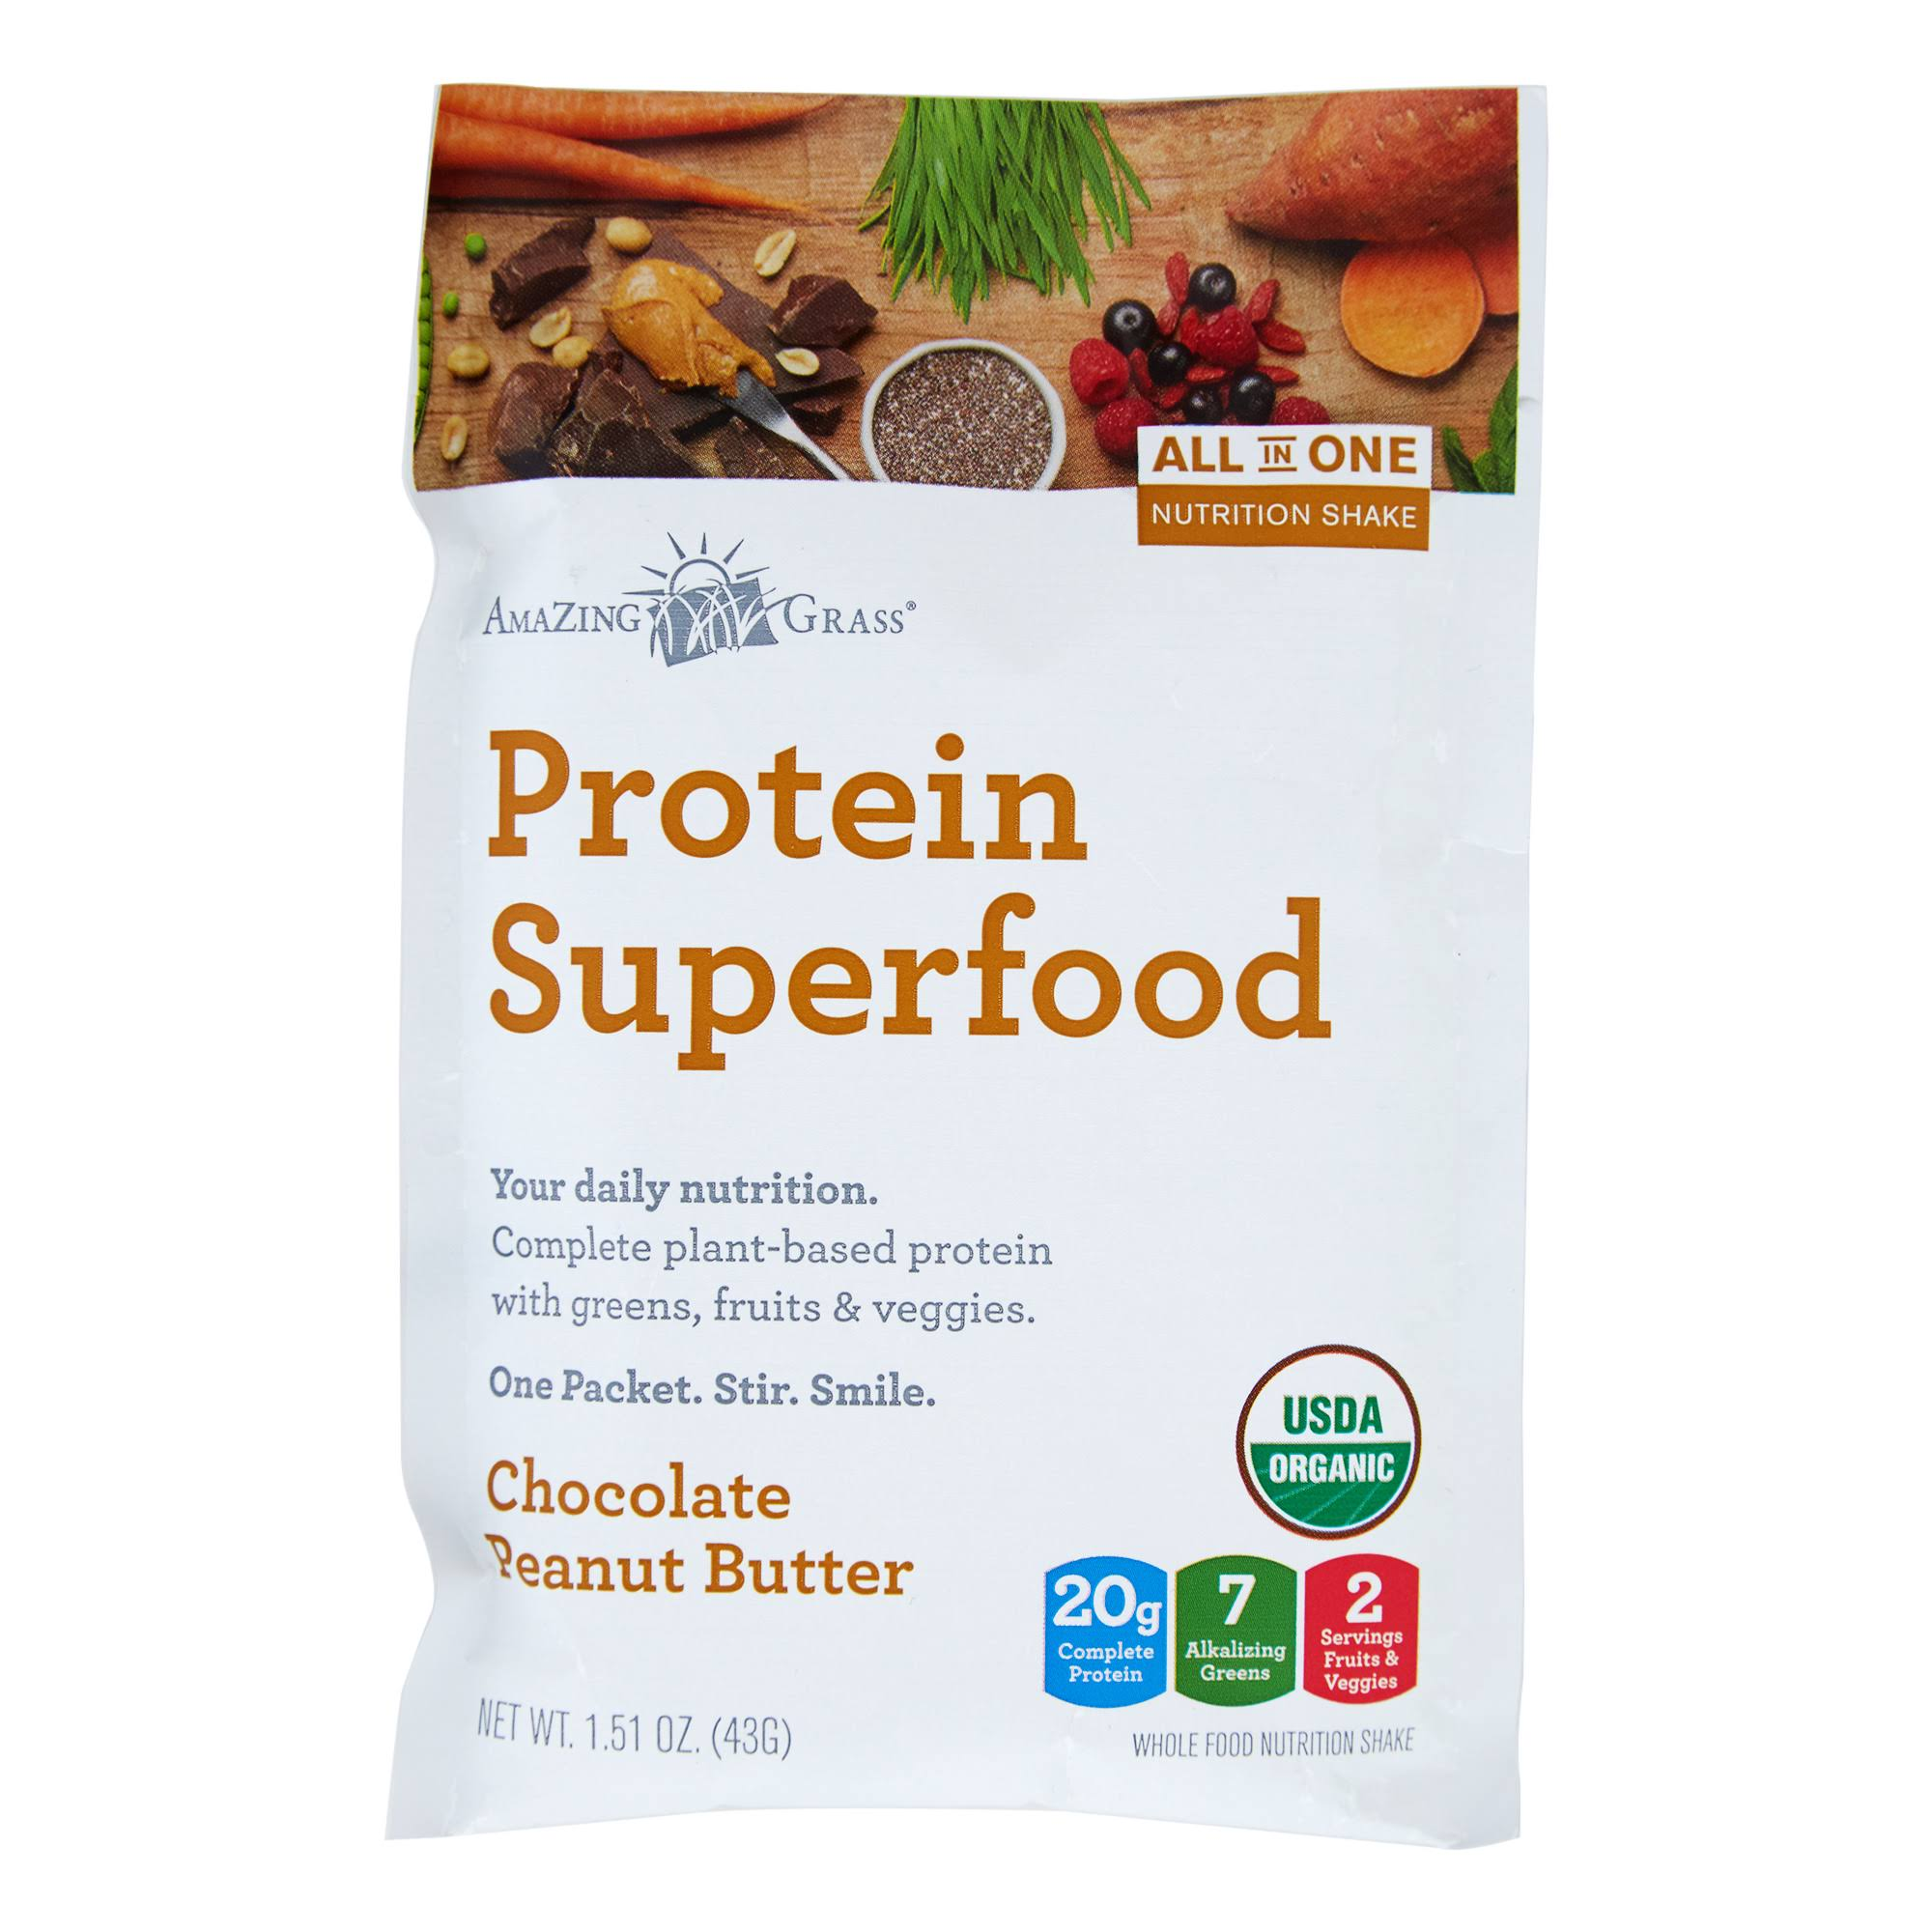 Amazing Grass Protein Superfood, Chocolate Peanut Butter - 1.51 oz